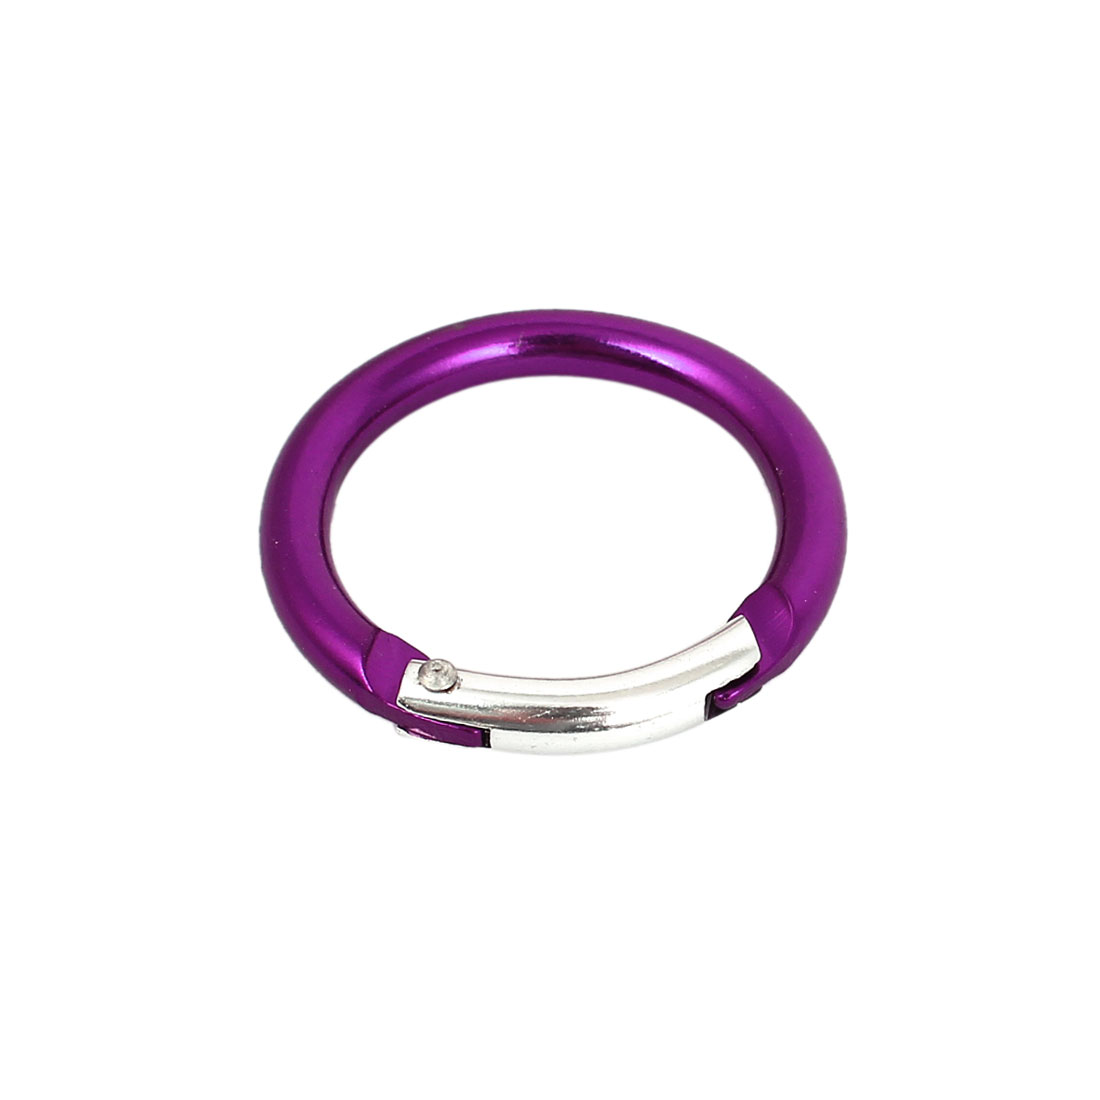 Aluminum Round Travel Camping Hiking Clip Hook Keychain Carabiner Purple